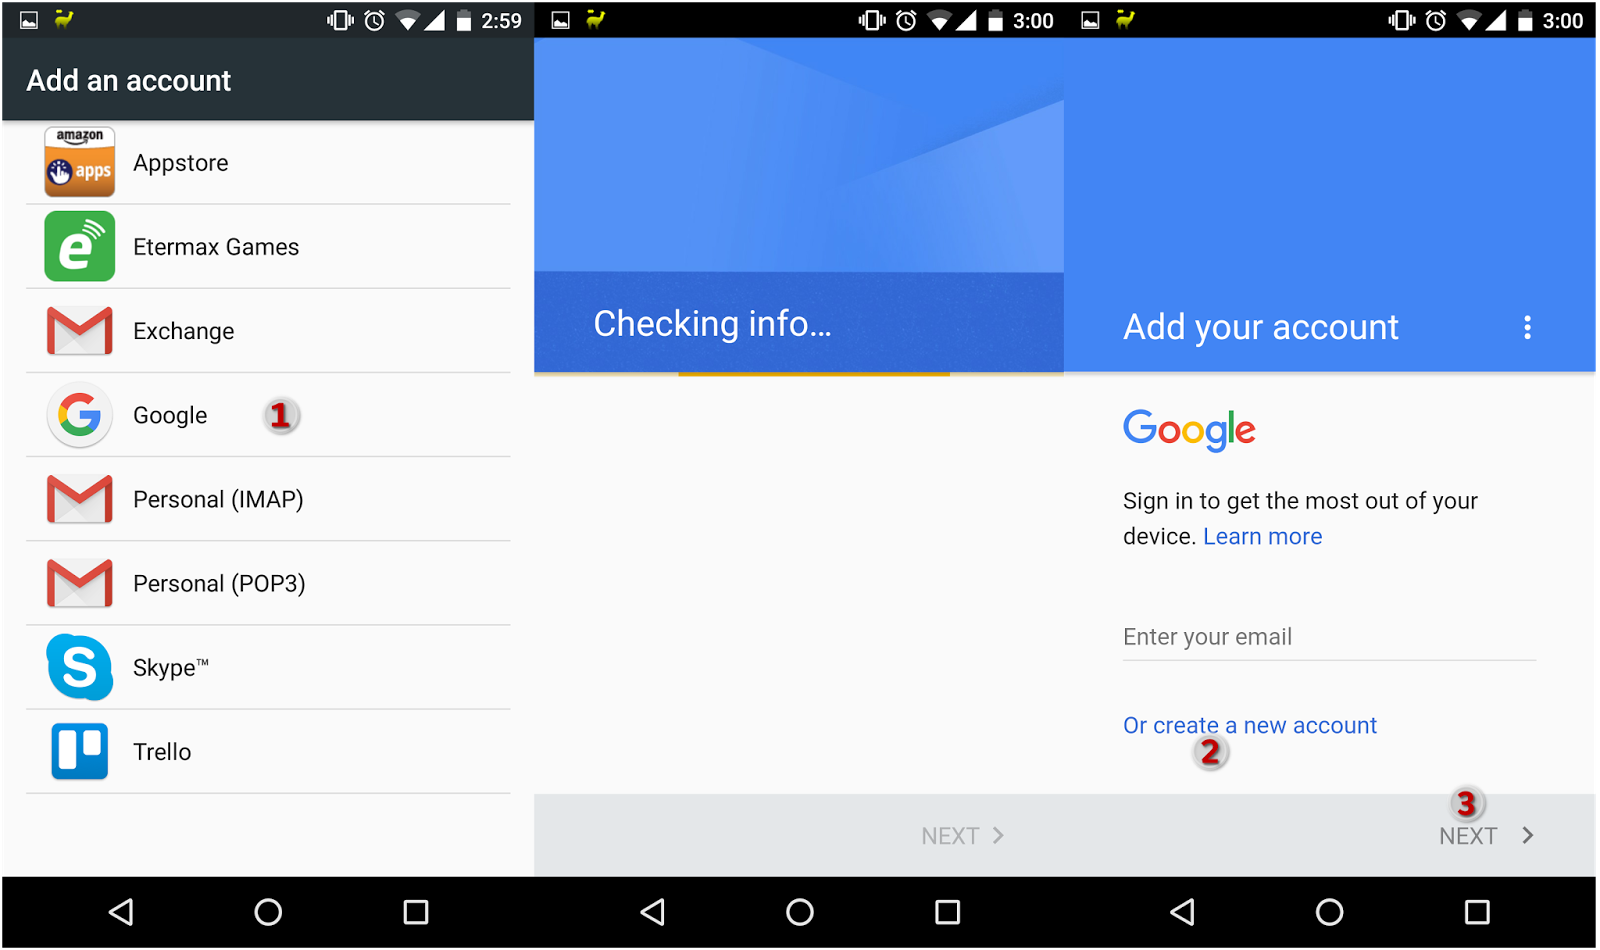 How to sign up for a Google/Gmail account without a phone